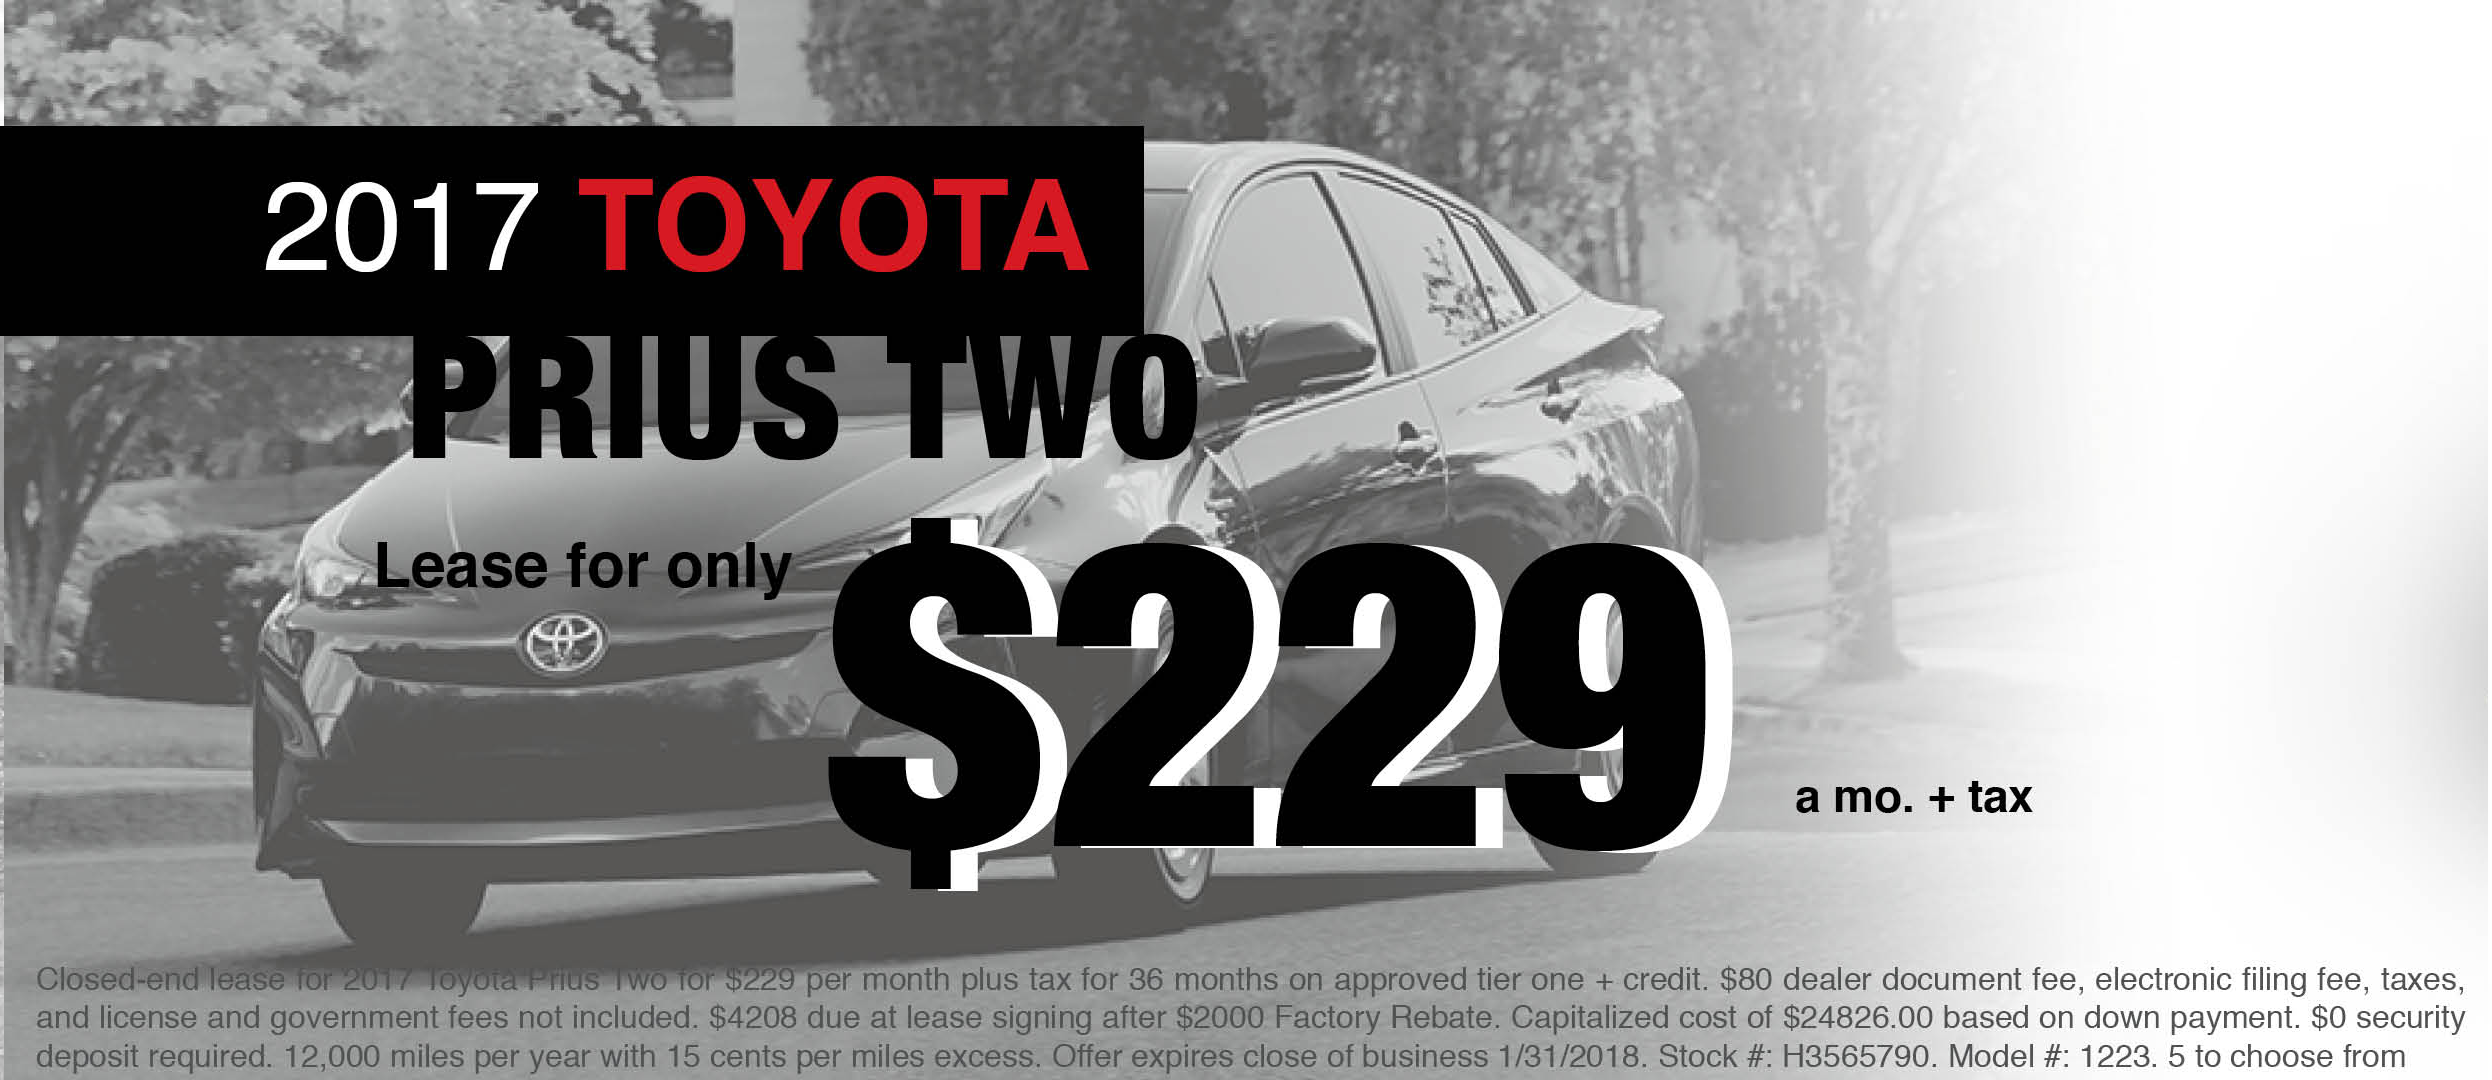 New 2018 Toyota Prius 2 Lease Offer